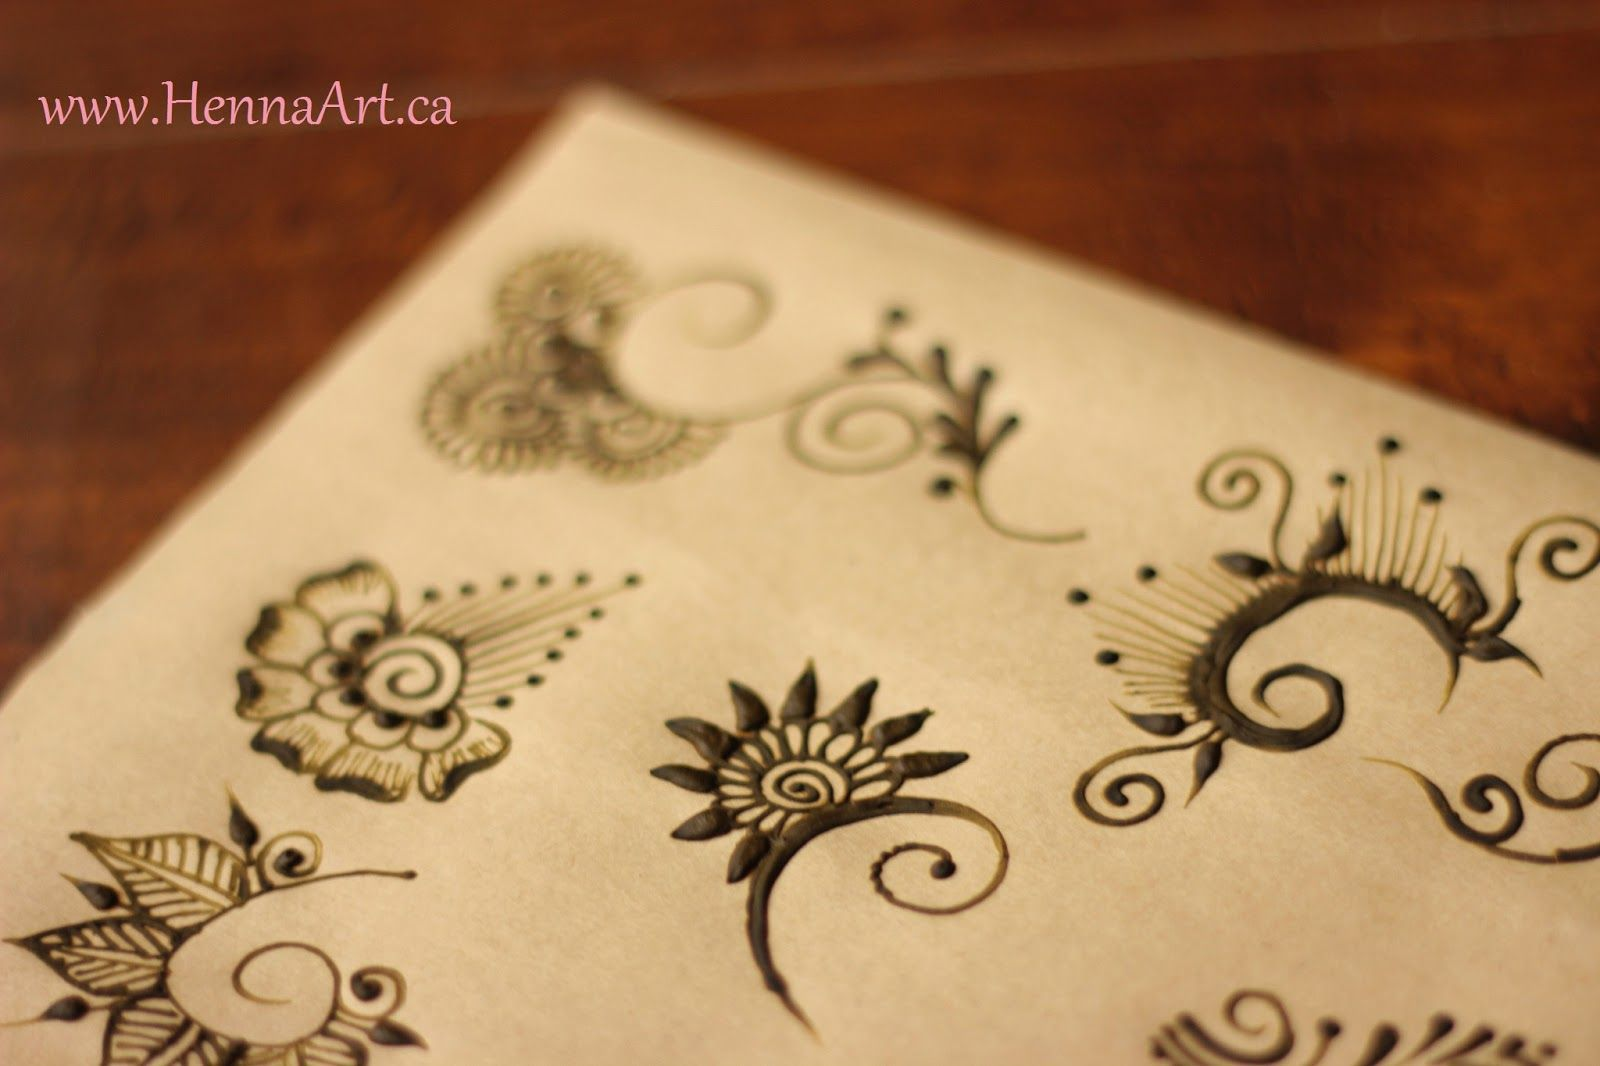 Mehndi For Practice : Use old mehndi cones to practice henna designs on paper